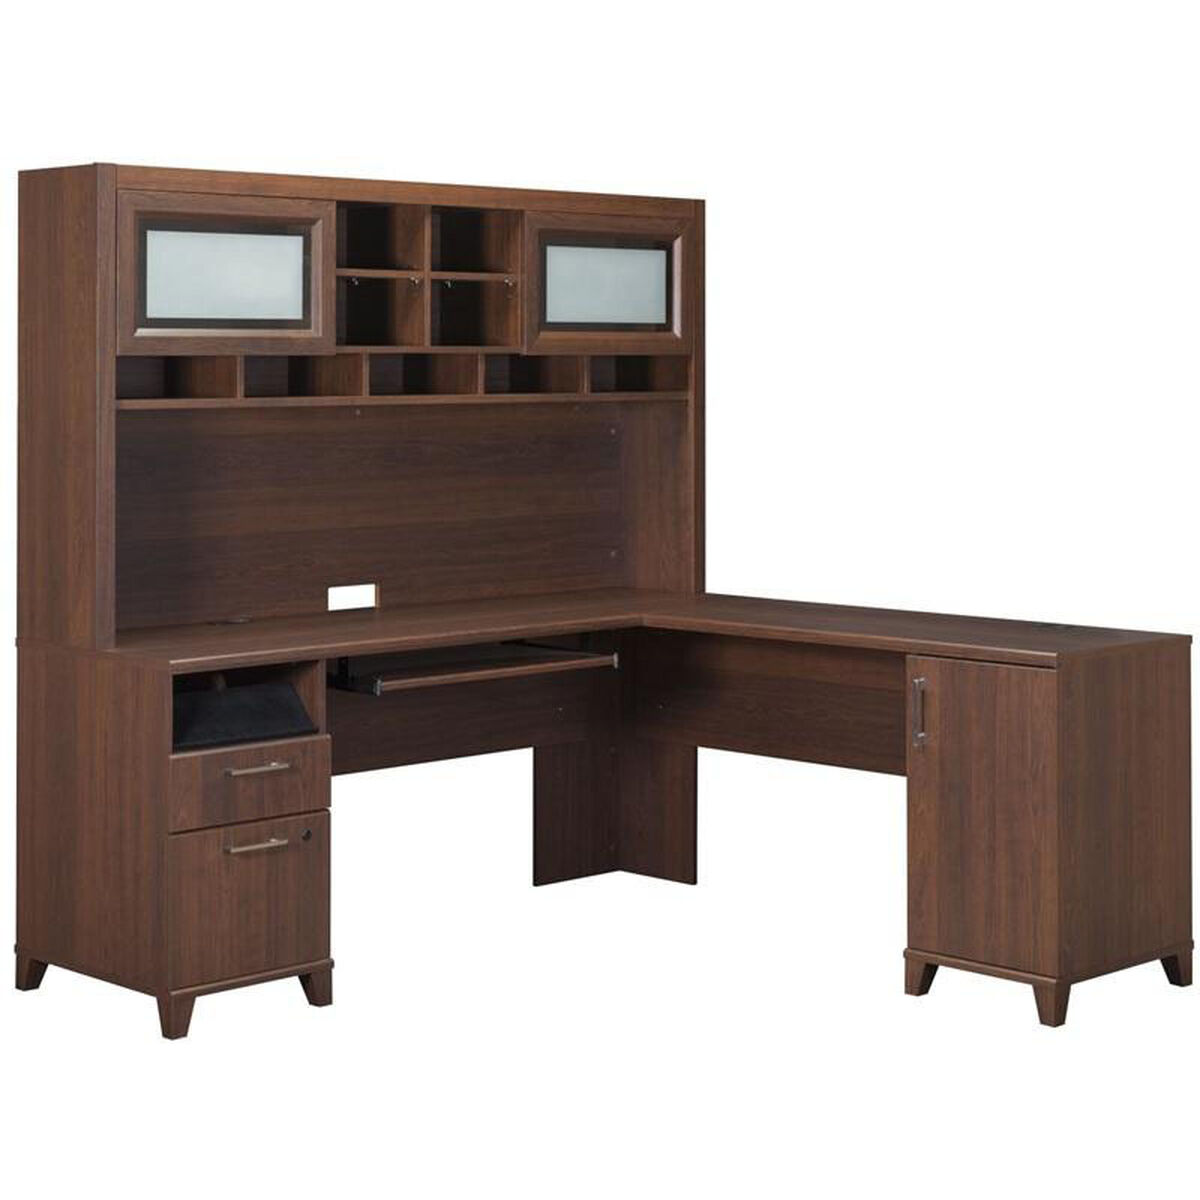 Our Achieve L Shaped Computer Desk With File Drawer In Sweet Cherry Finish Is On